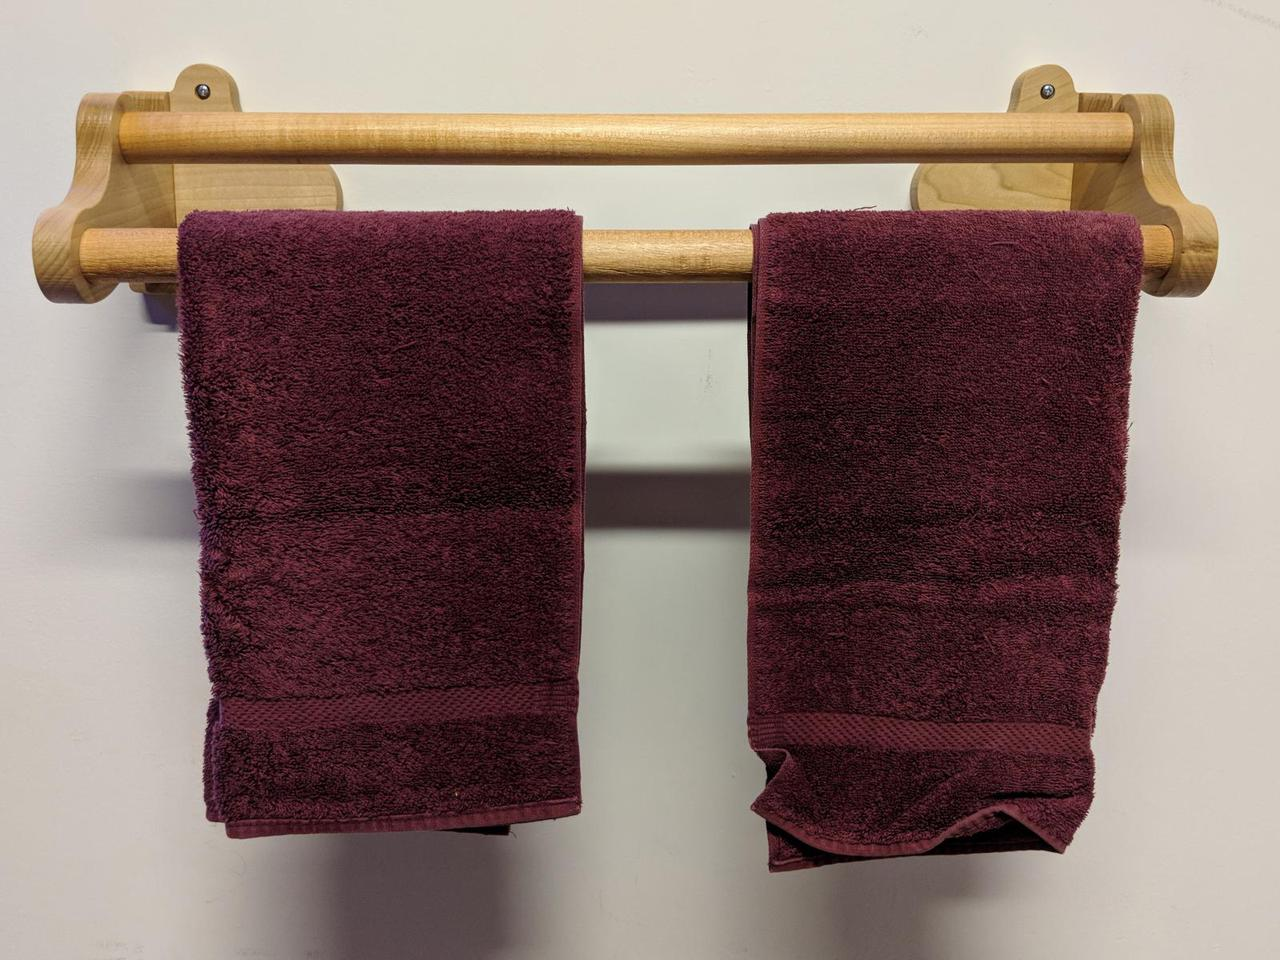 /images/itp/subtraction/week7/mounted_towel_rack.jpg